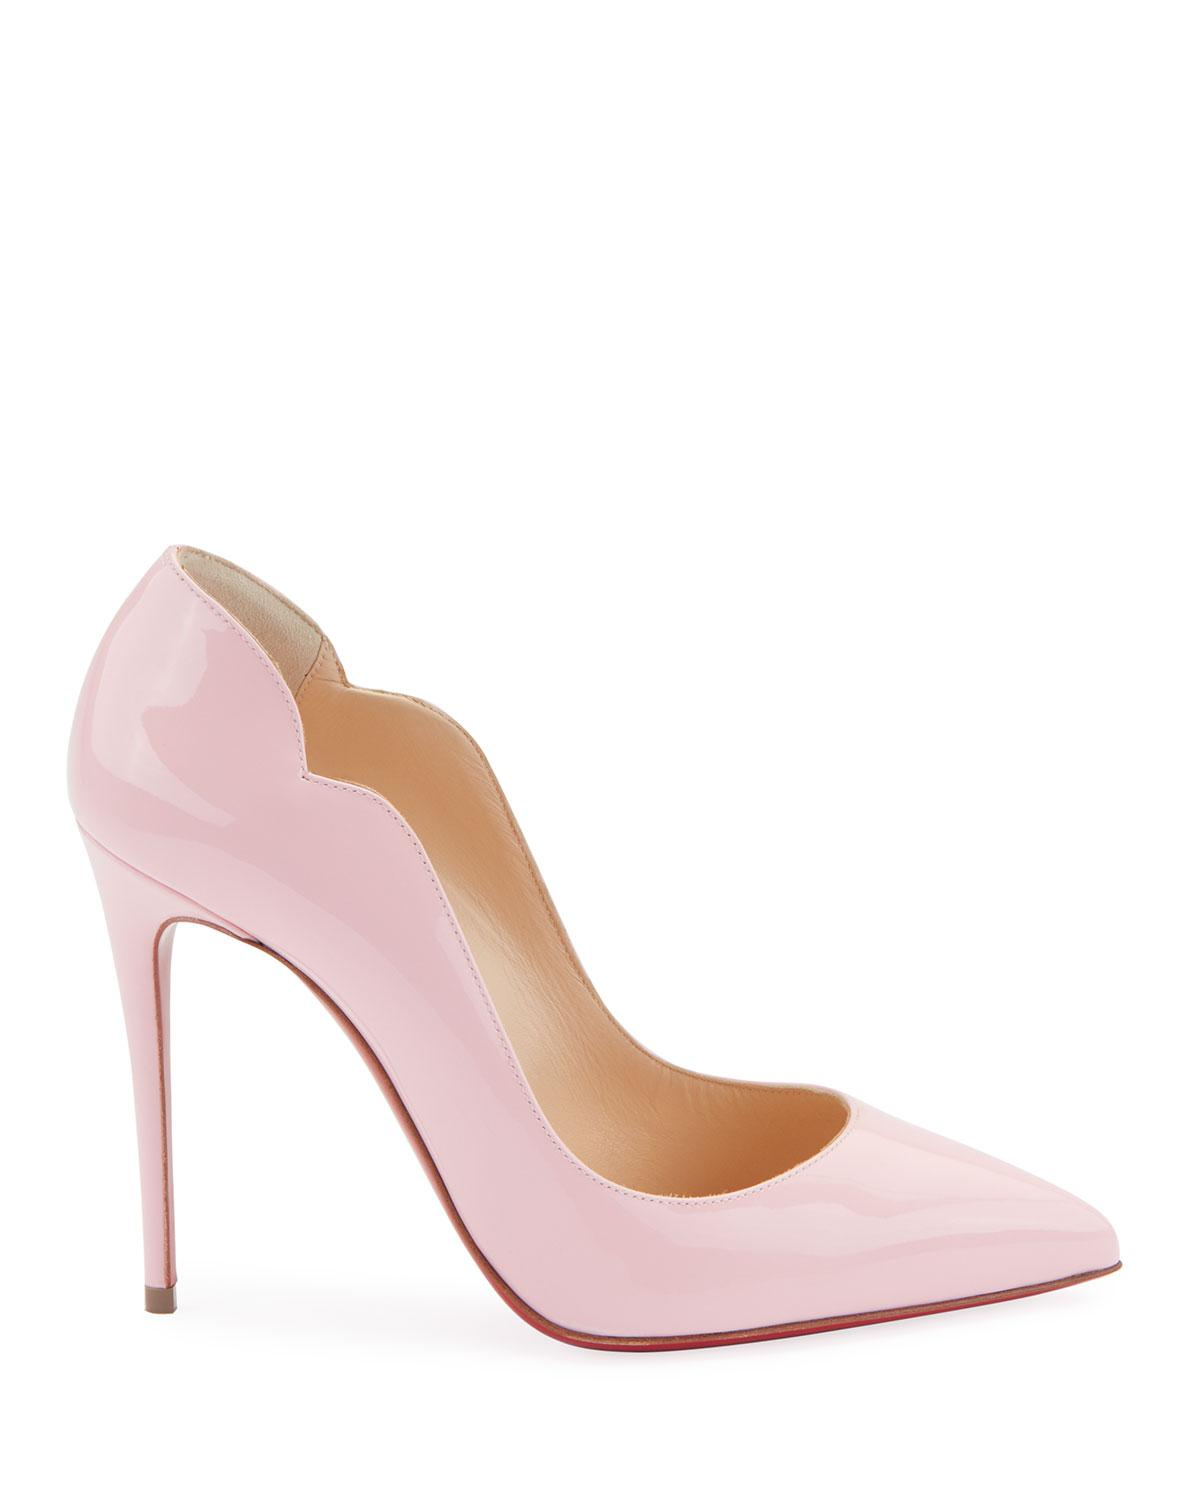 9e95e9b02f2d Lyst - Christian Louboutin Hot Chick in Pink